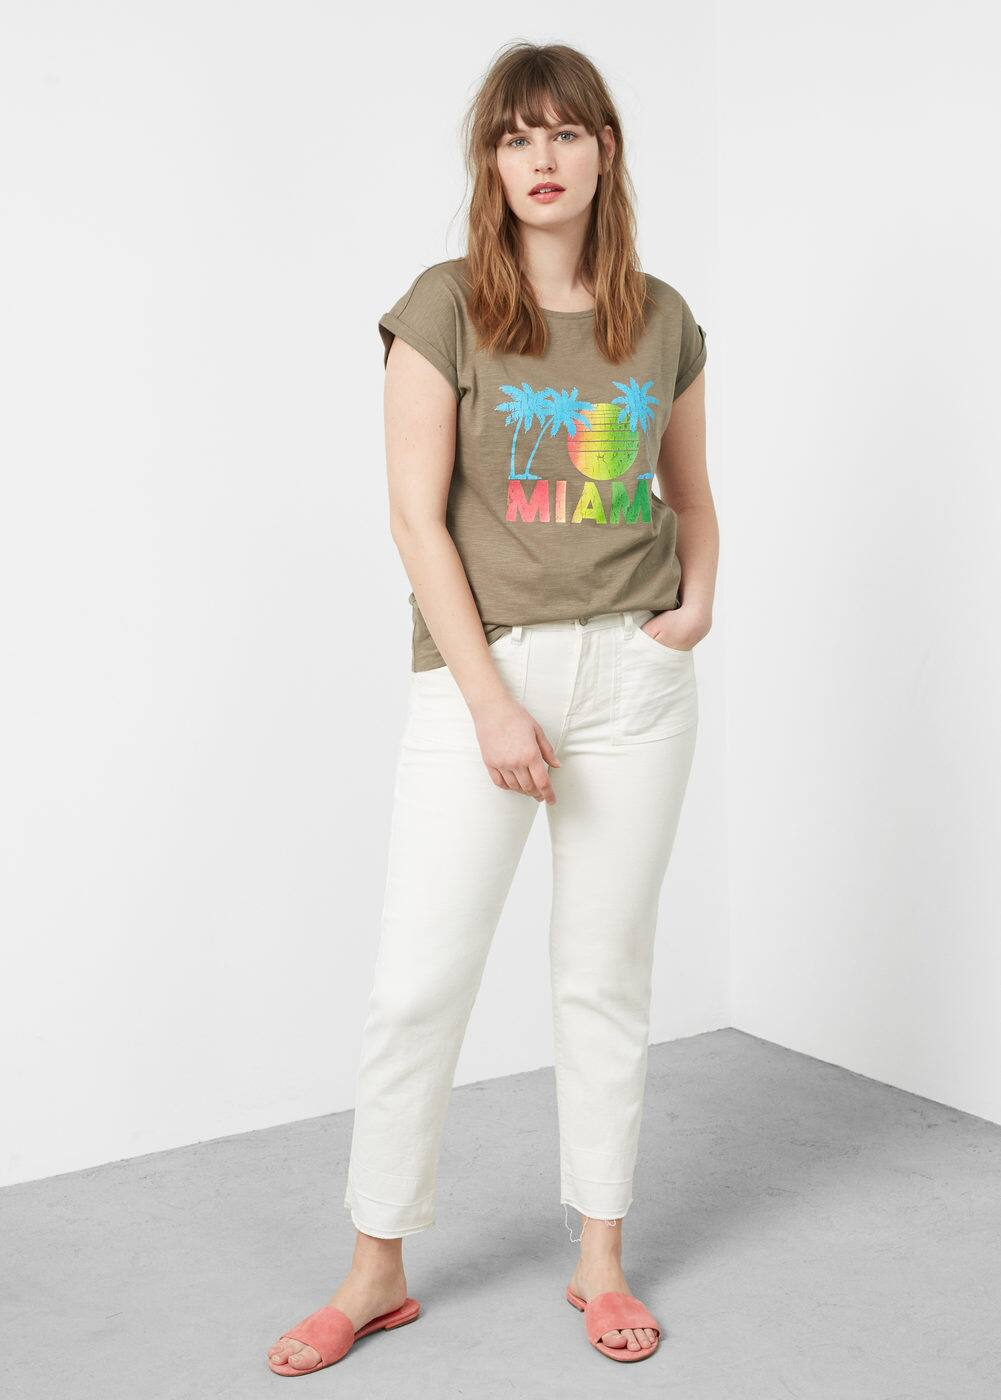 Palm image t-shirt | VIOLETA BY MANGO